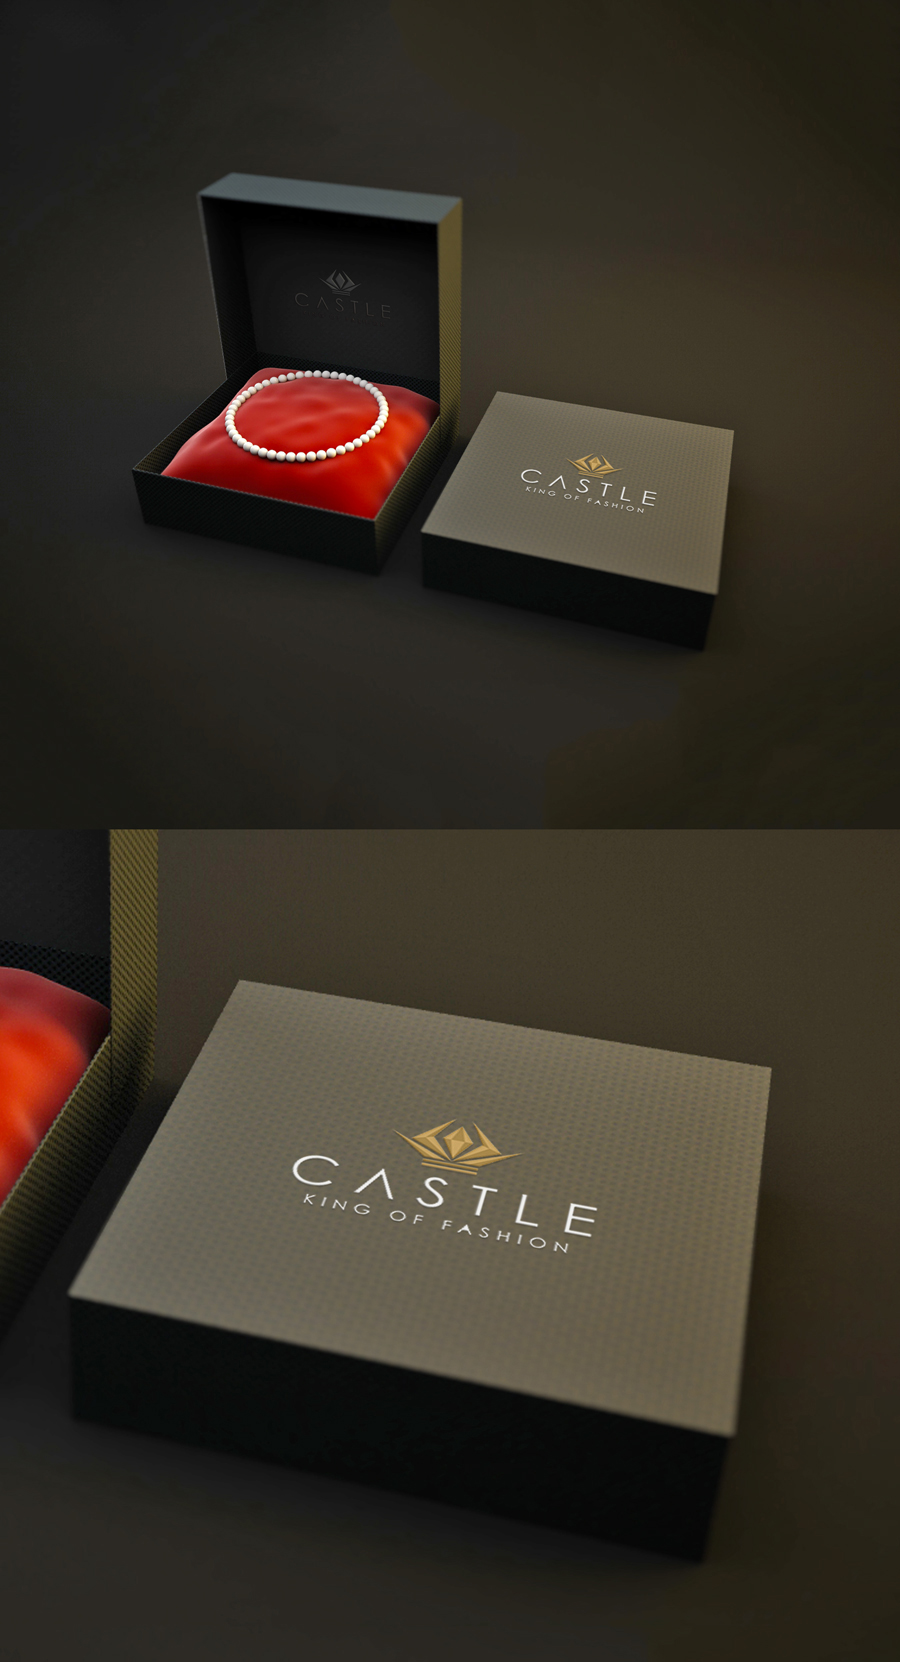 castle-jewelry-box1